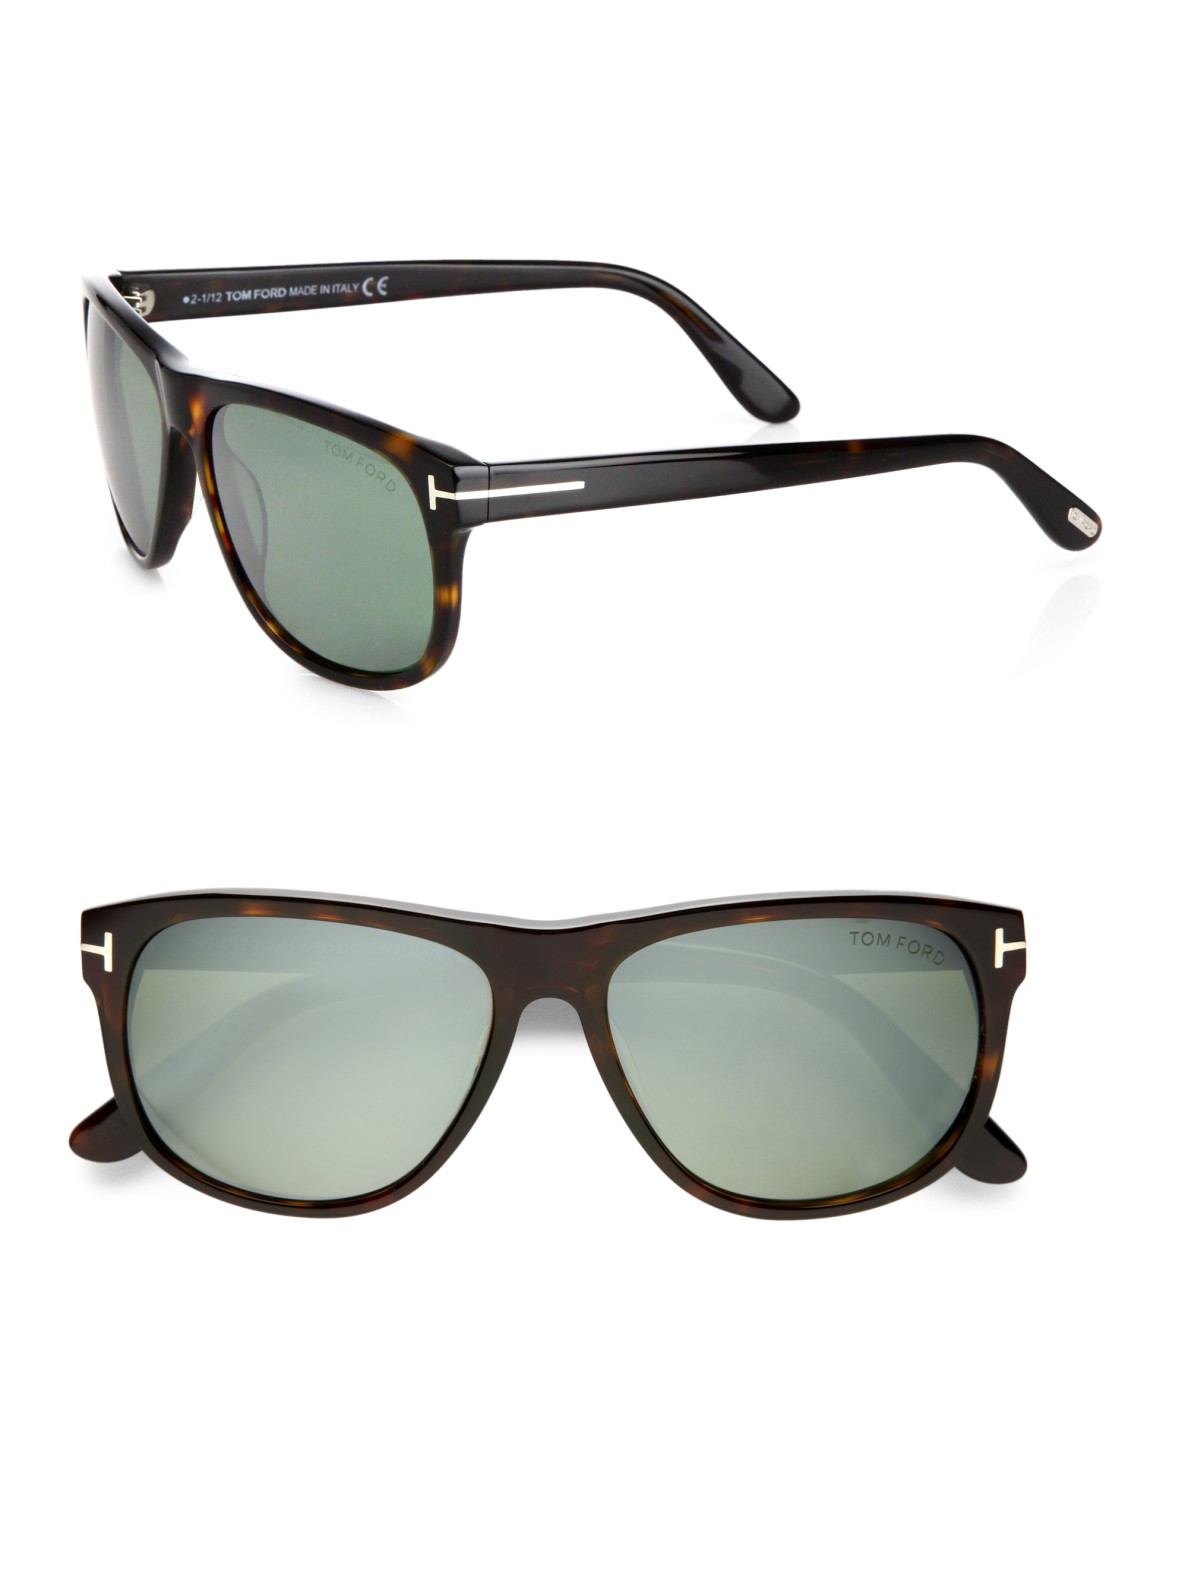 tom ford plastic wayfarer sunglasses in black for men lyst. Cars Review. Best American Auto & Cars Review